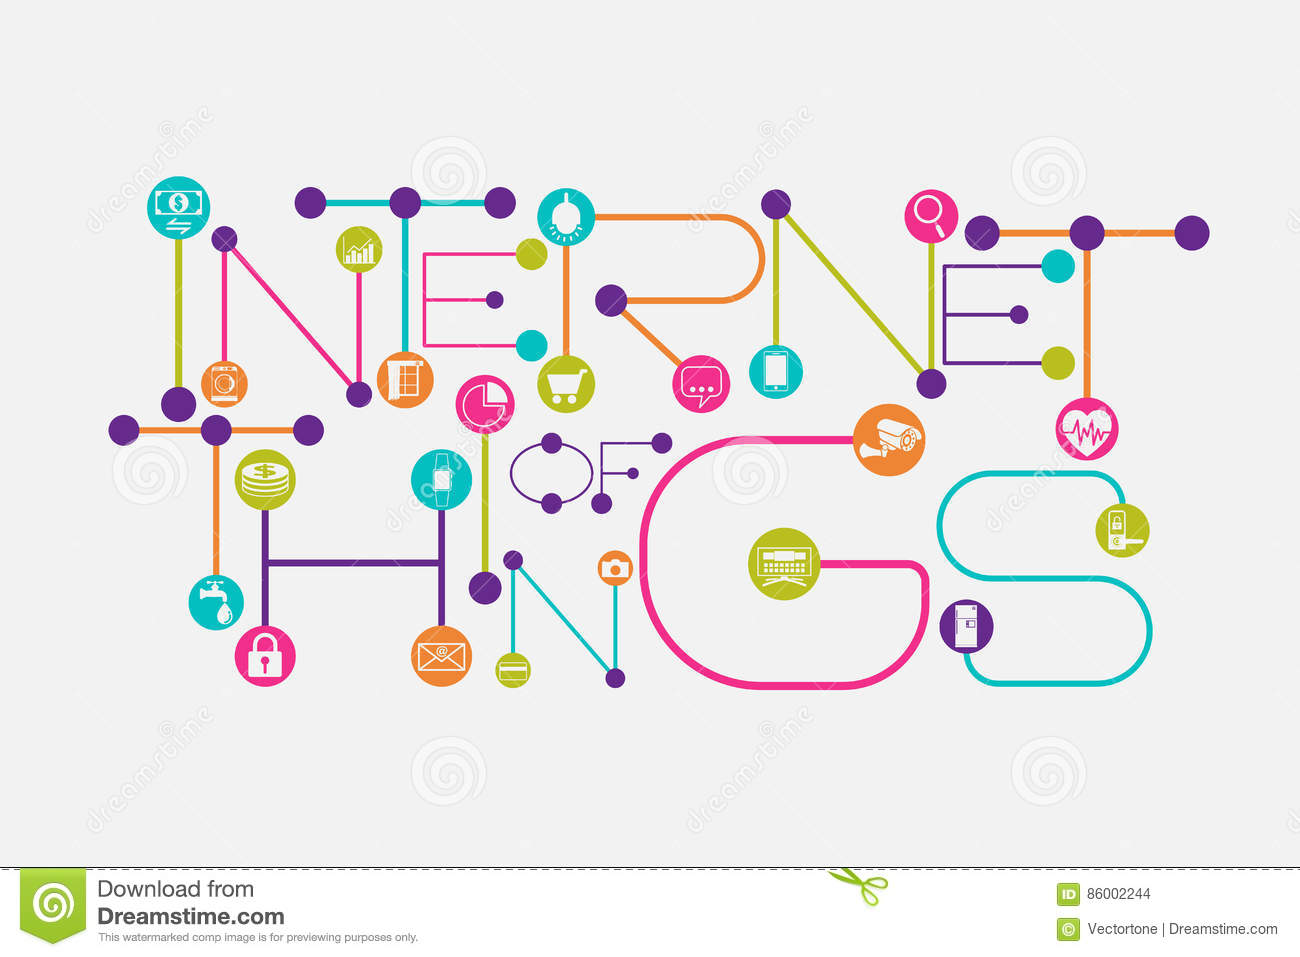 Internet of Things concept using dot and connecting line font style.